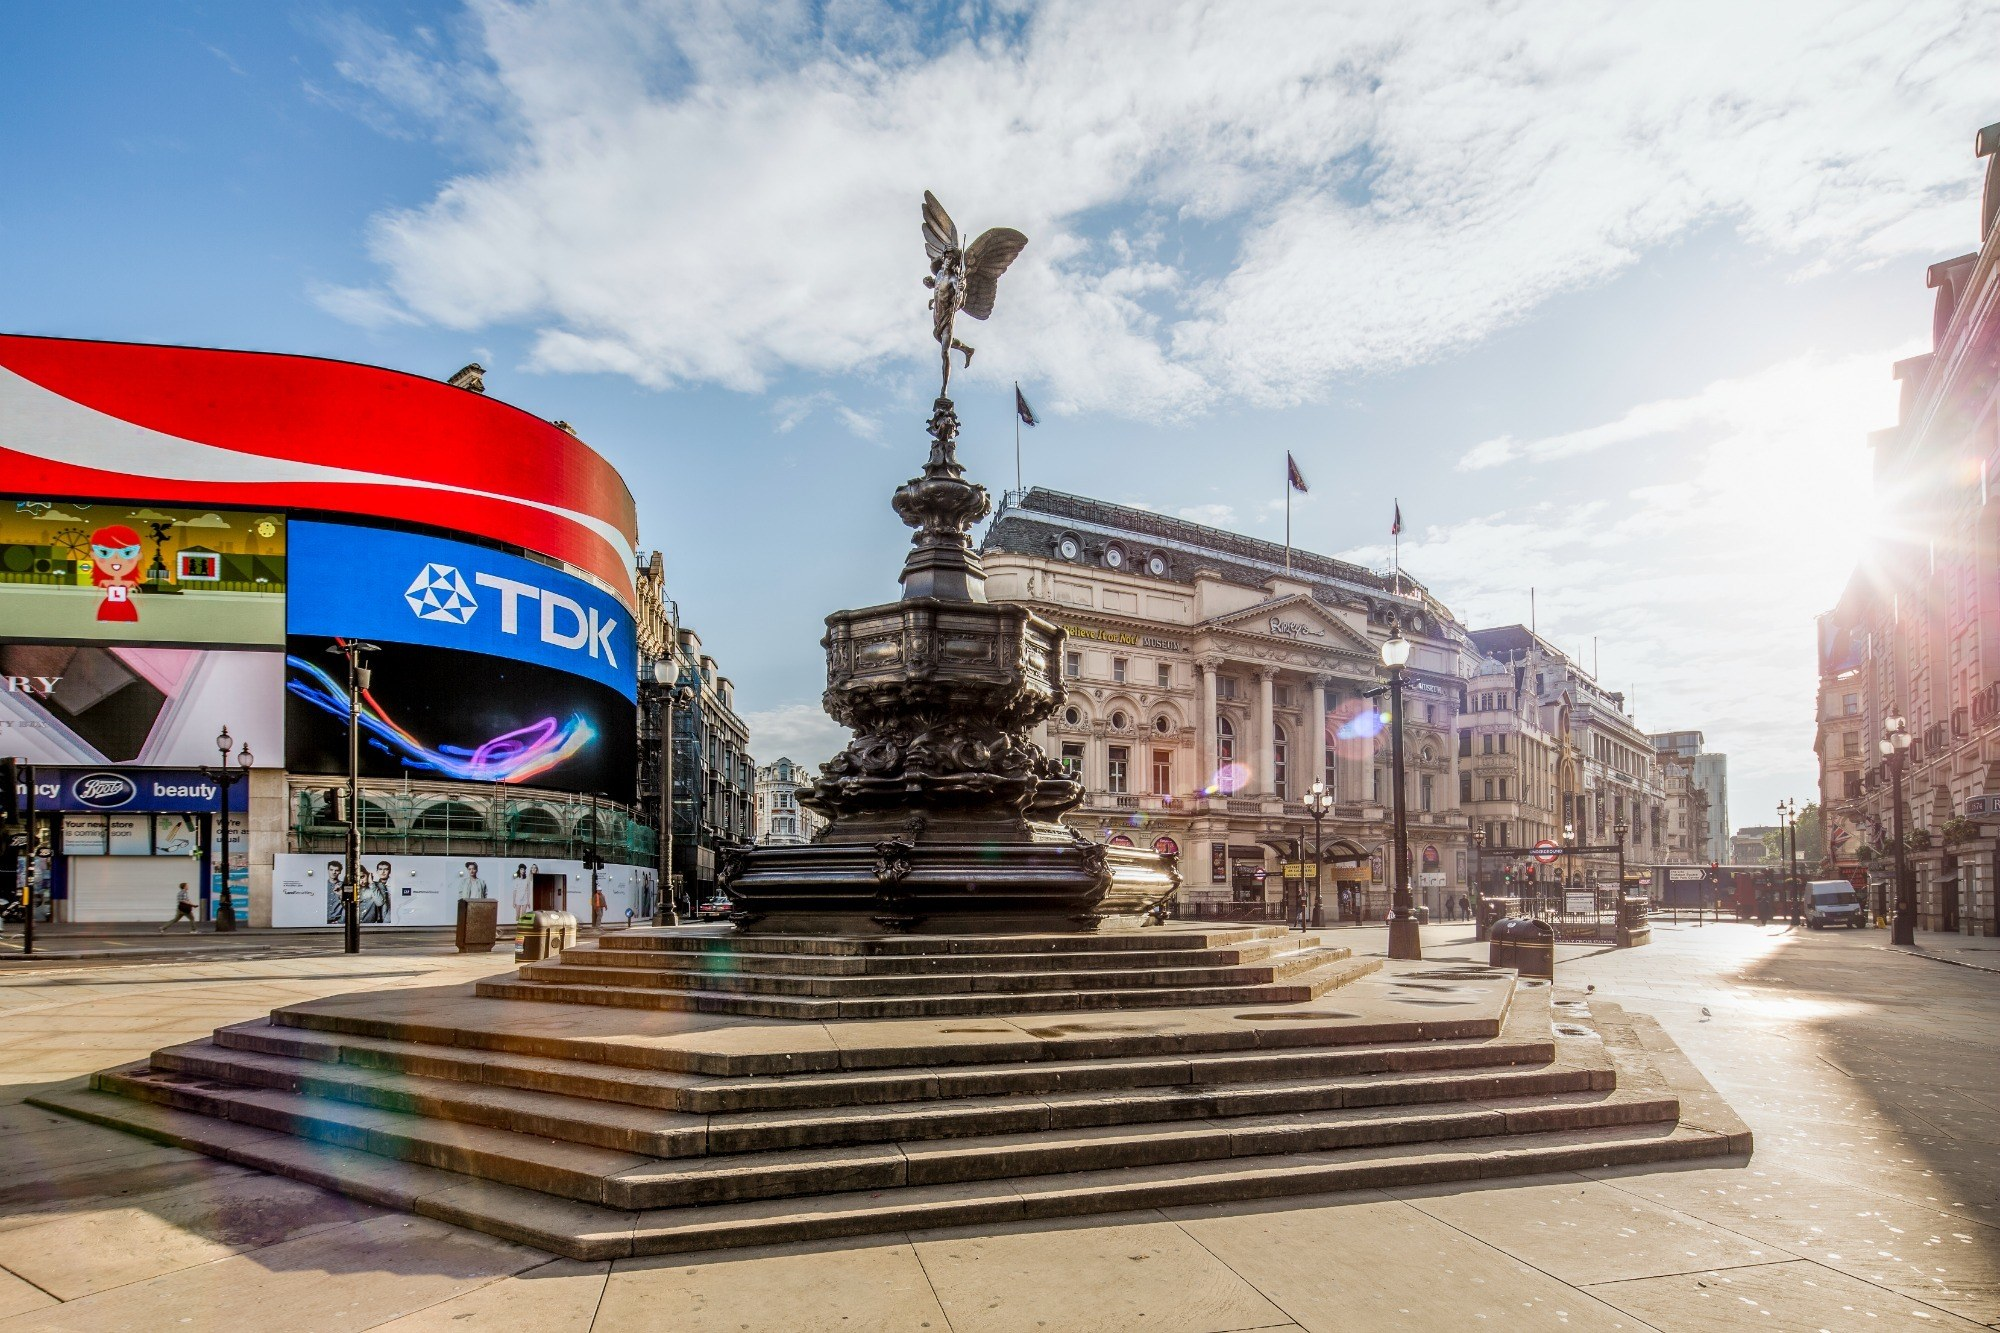 Piccadilly Circus in London appears in several Harry Potter movies.